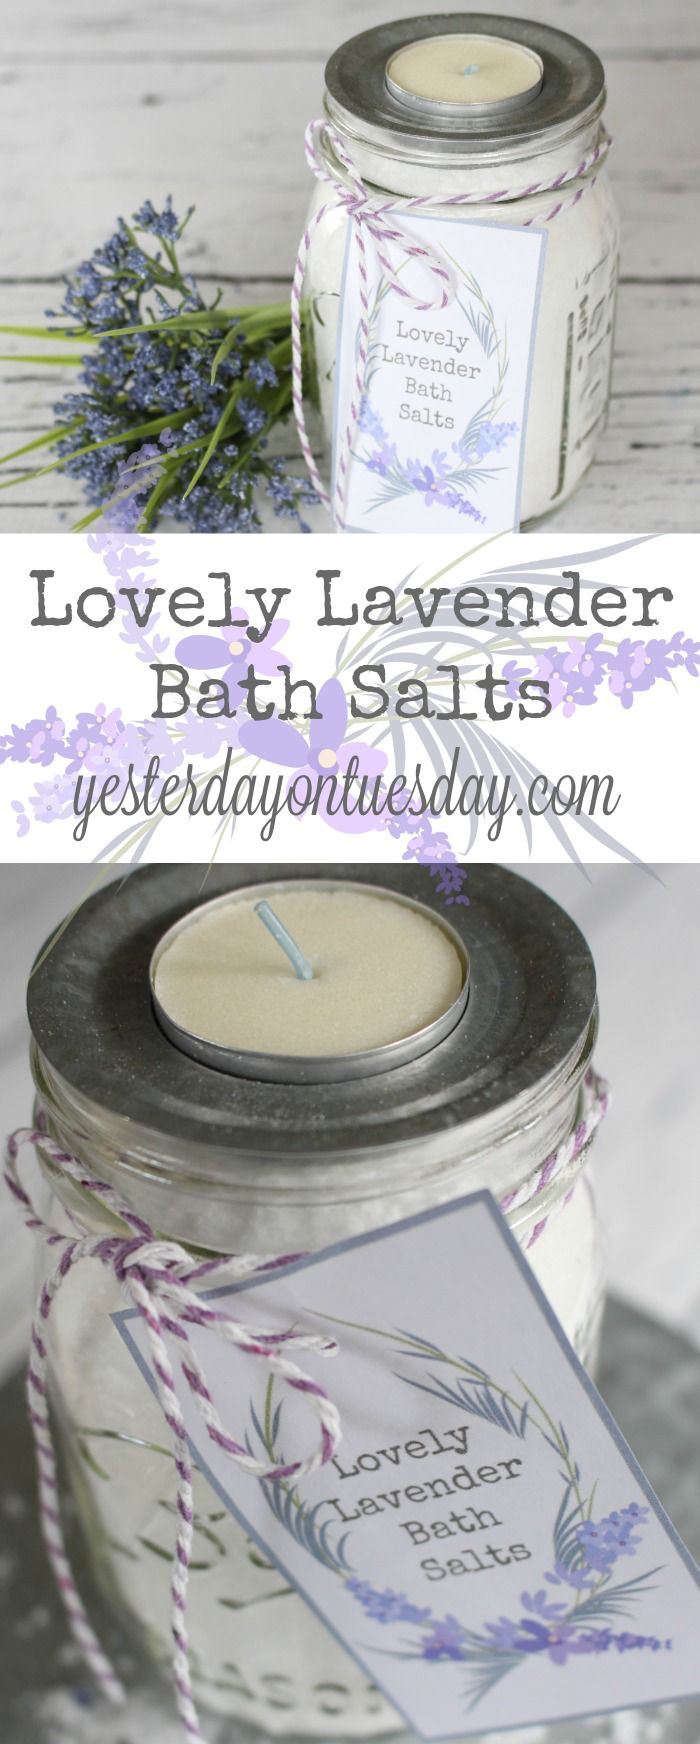 DIY Lavender Bath Salts: How to make your own lavender bath salts with free pretty printable tags for packaging them in a mason jar! Wonderful Mother's Day gift idea. bath salts | mason jars | Mother's Day | gift